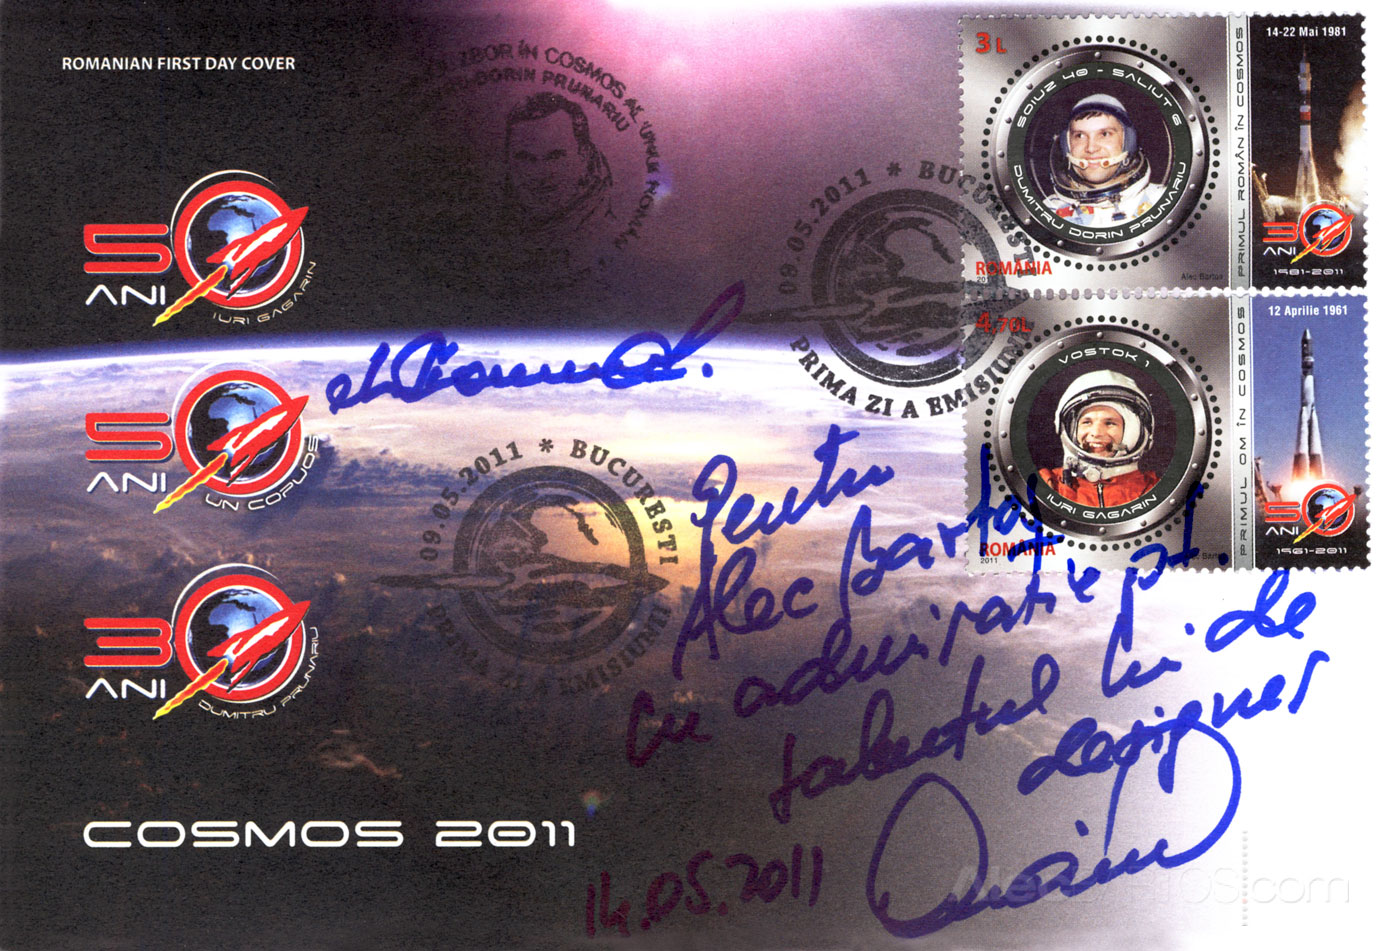 First Day Cover with Prunariu's signature and dedication